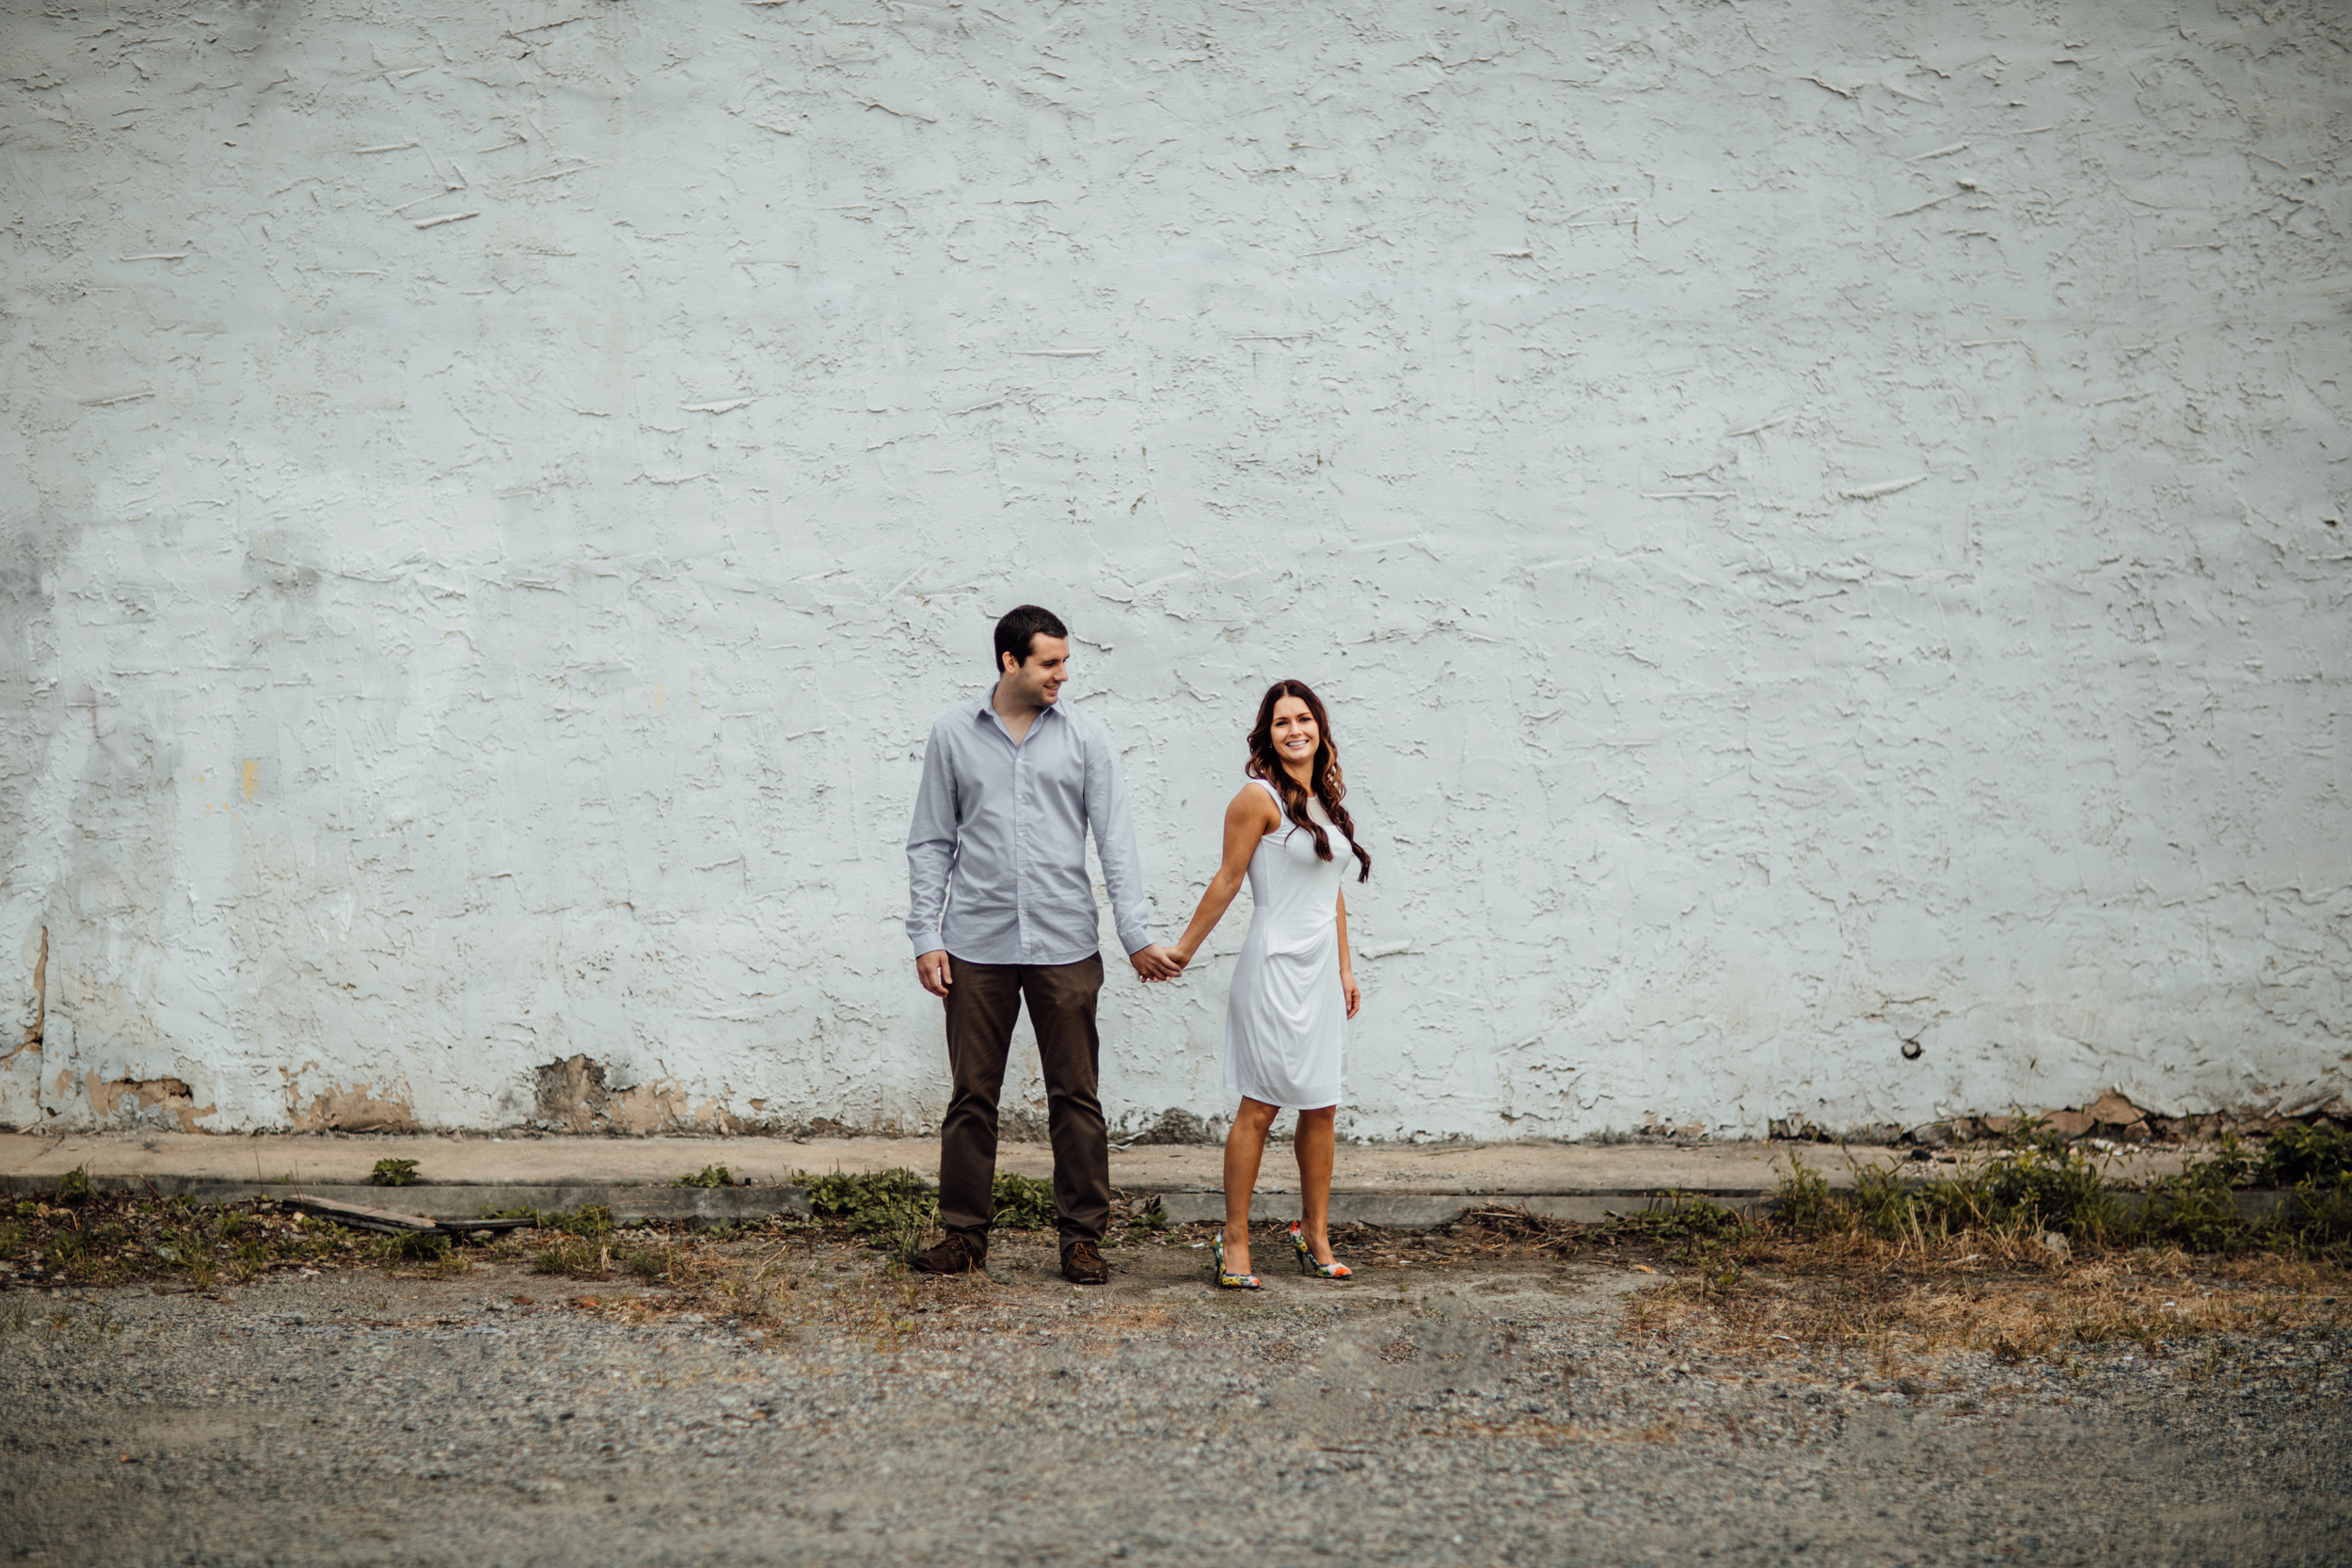 BRITTANYandKEVIN-Engagement2015 (17 of 115).jpg